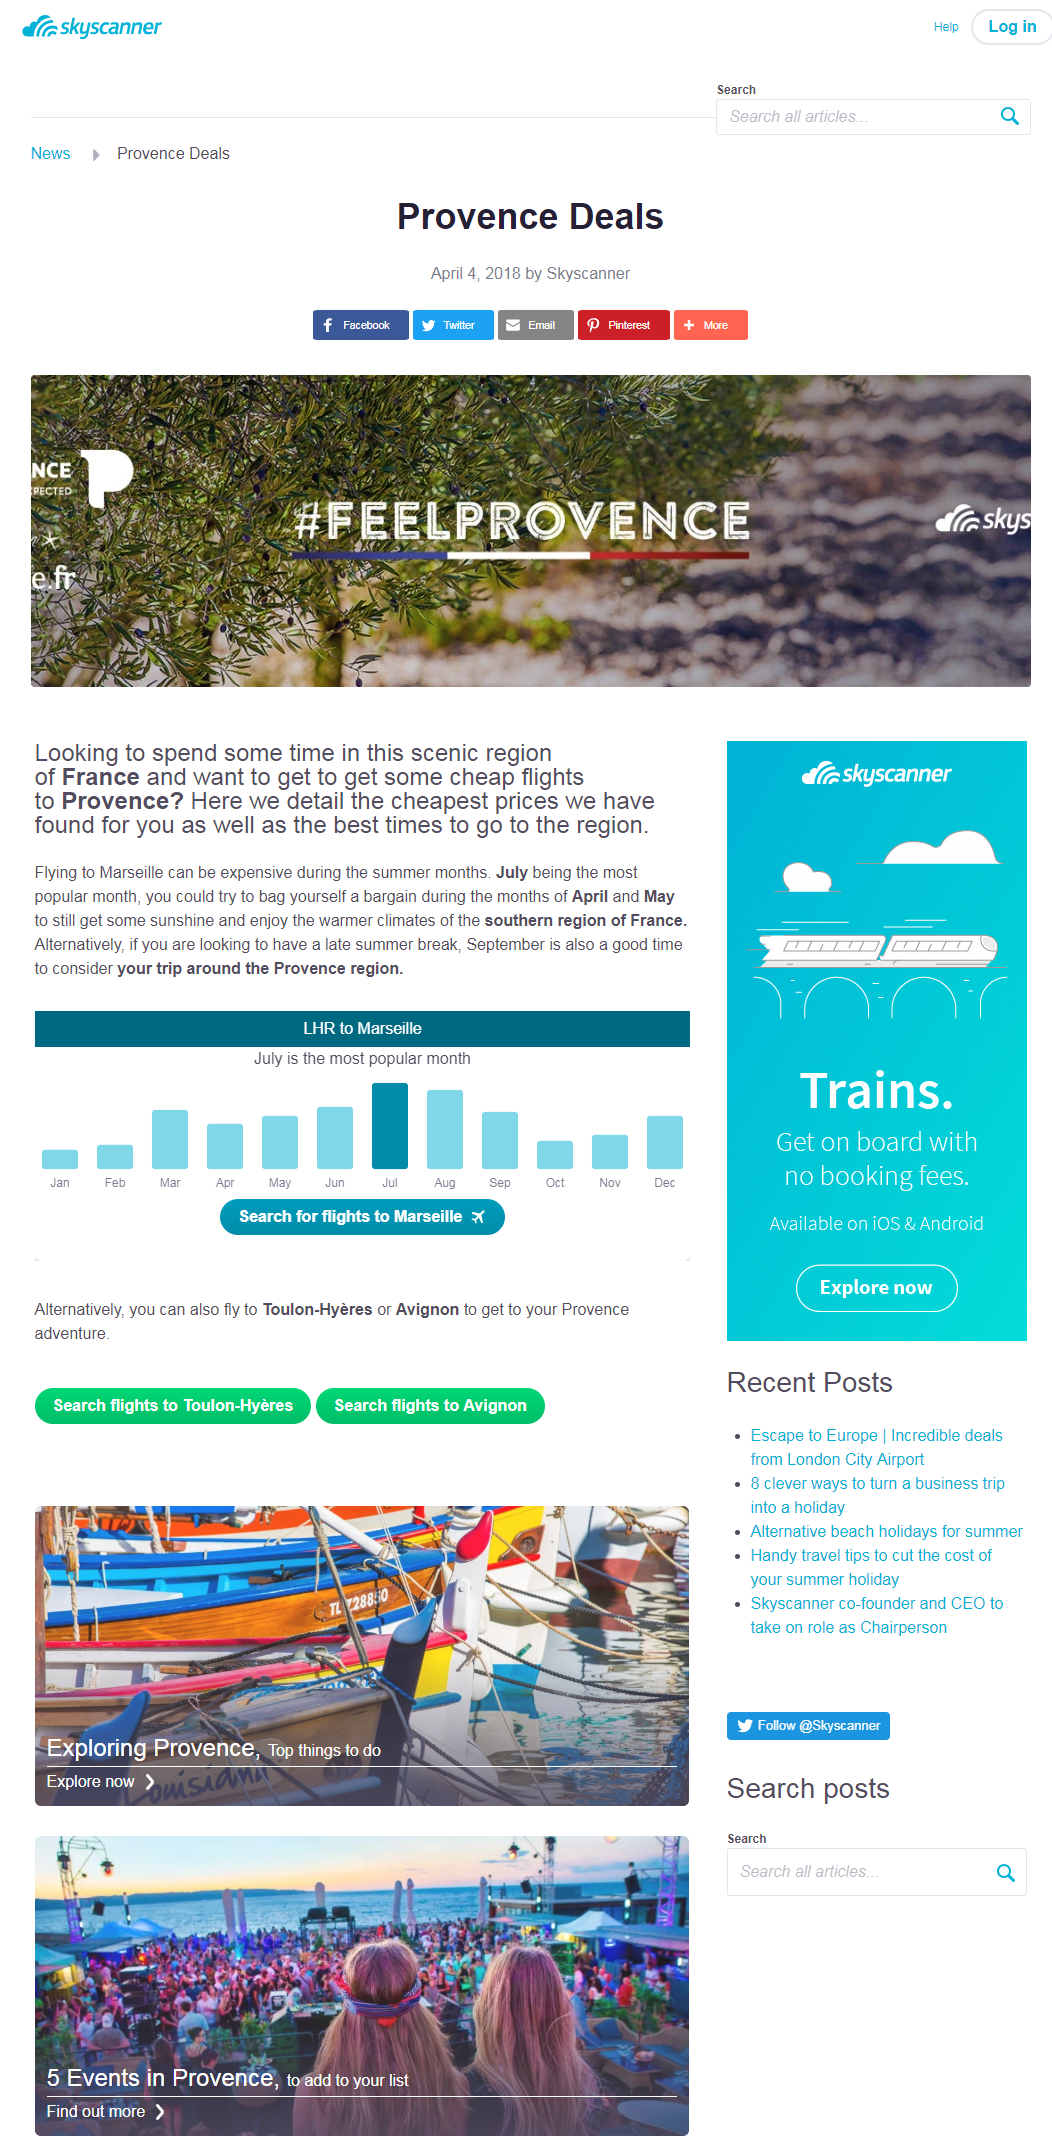 Sponsored content on Skyscanner